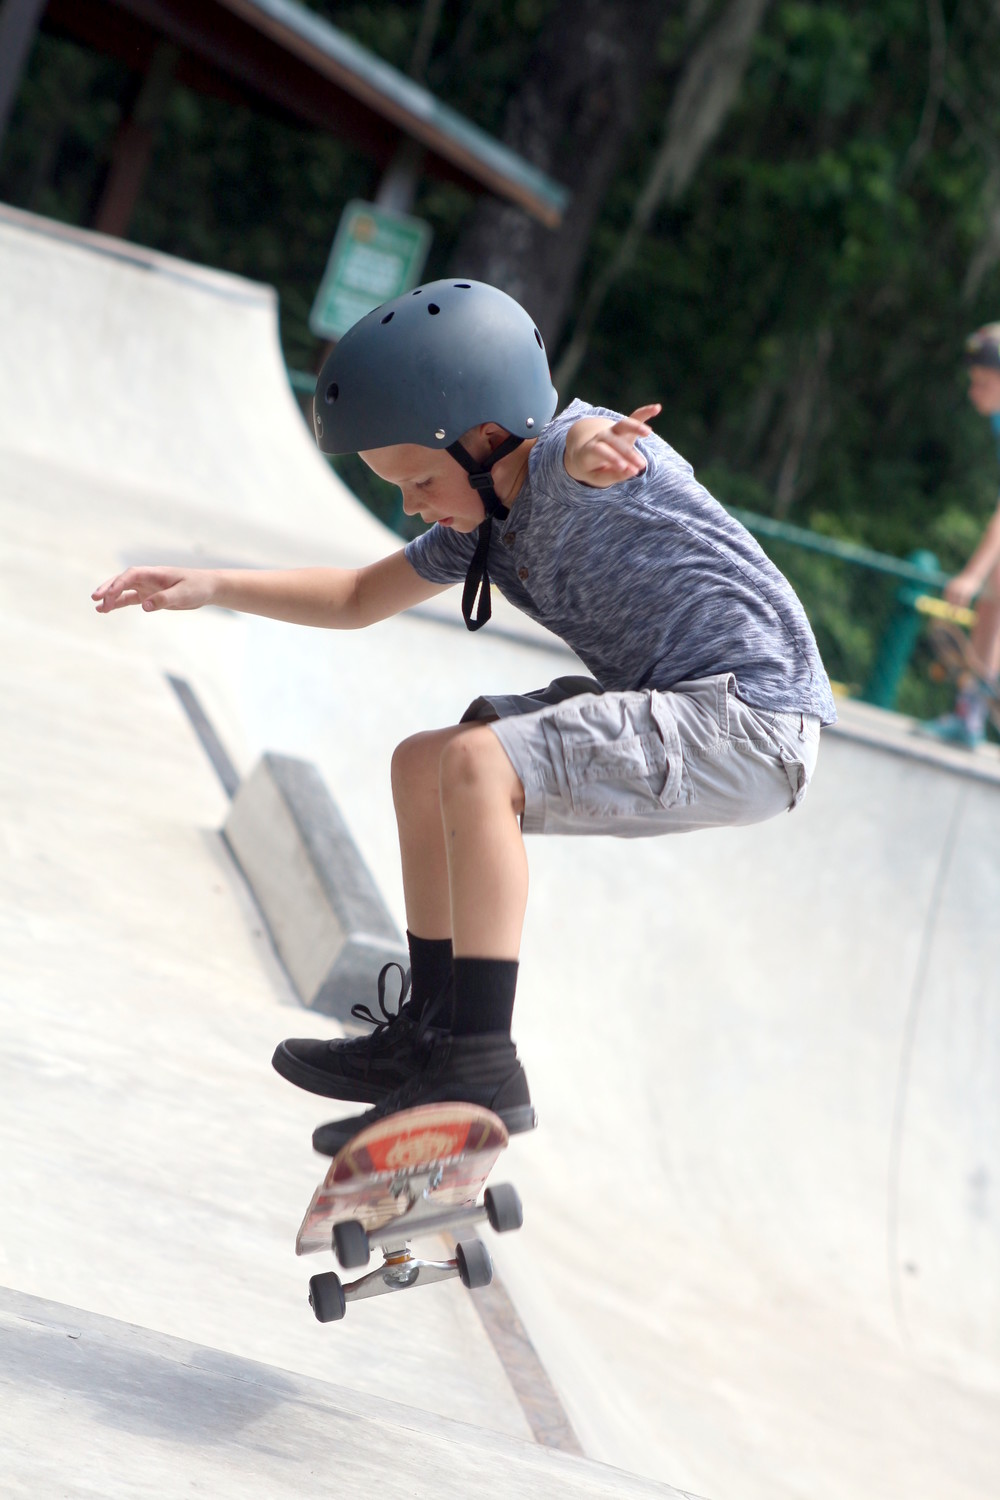 Nine year old Tyler Gold checked out a molly on the back side of the OP Skate Park course.